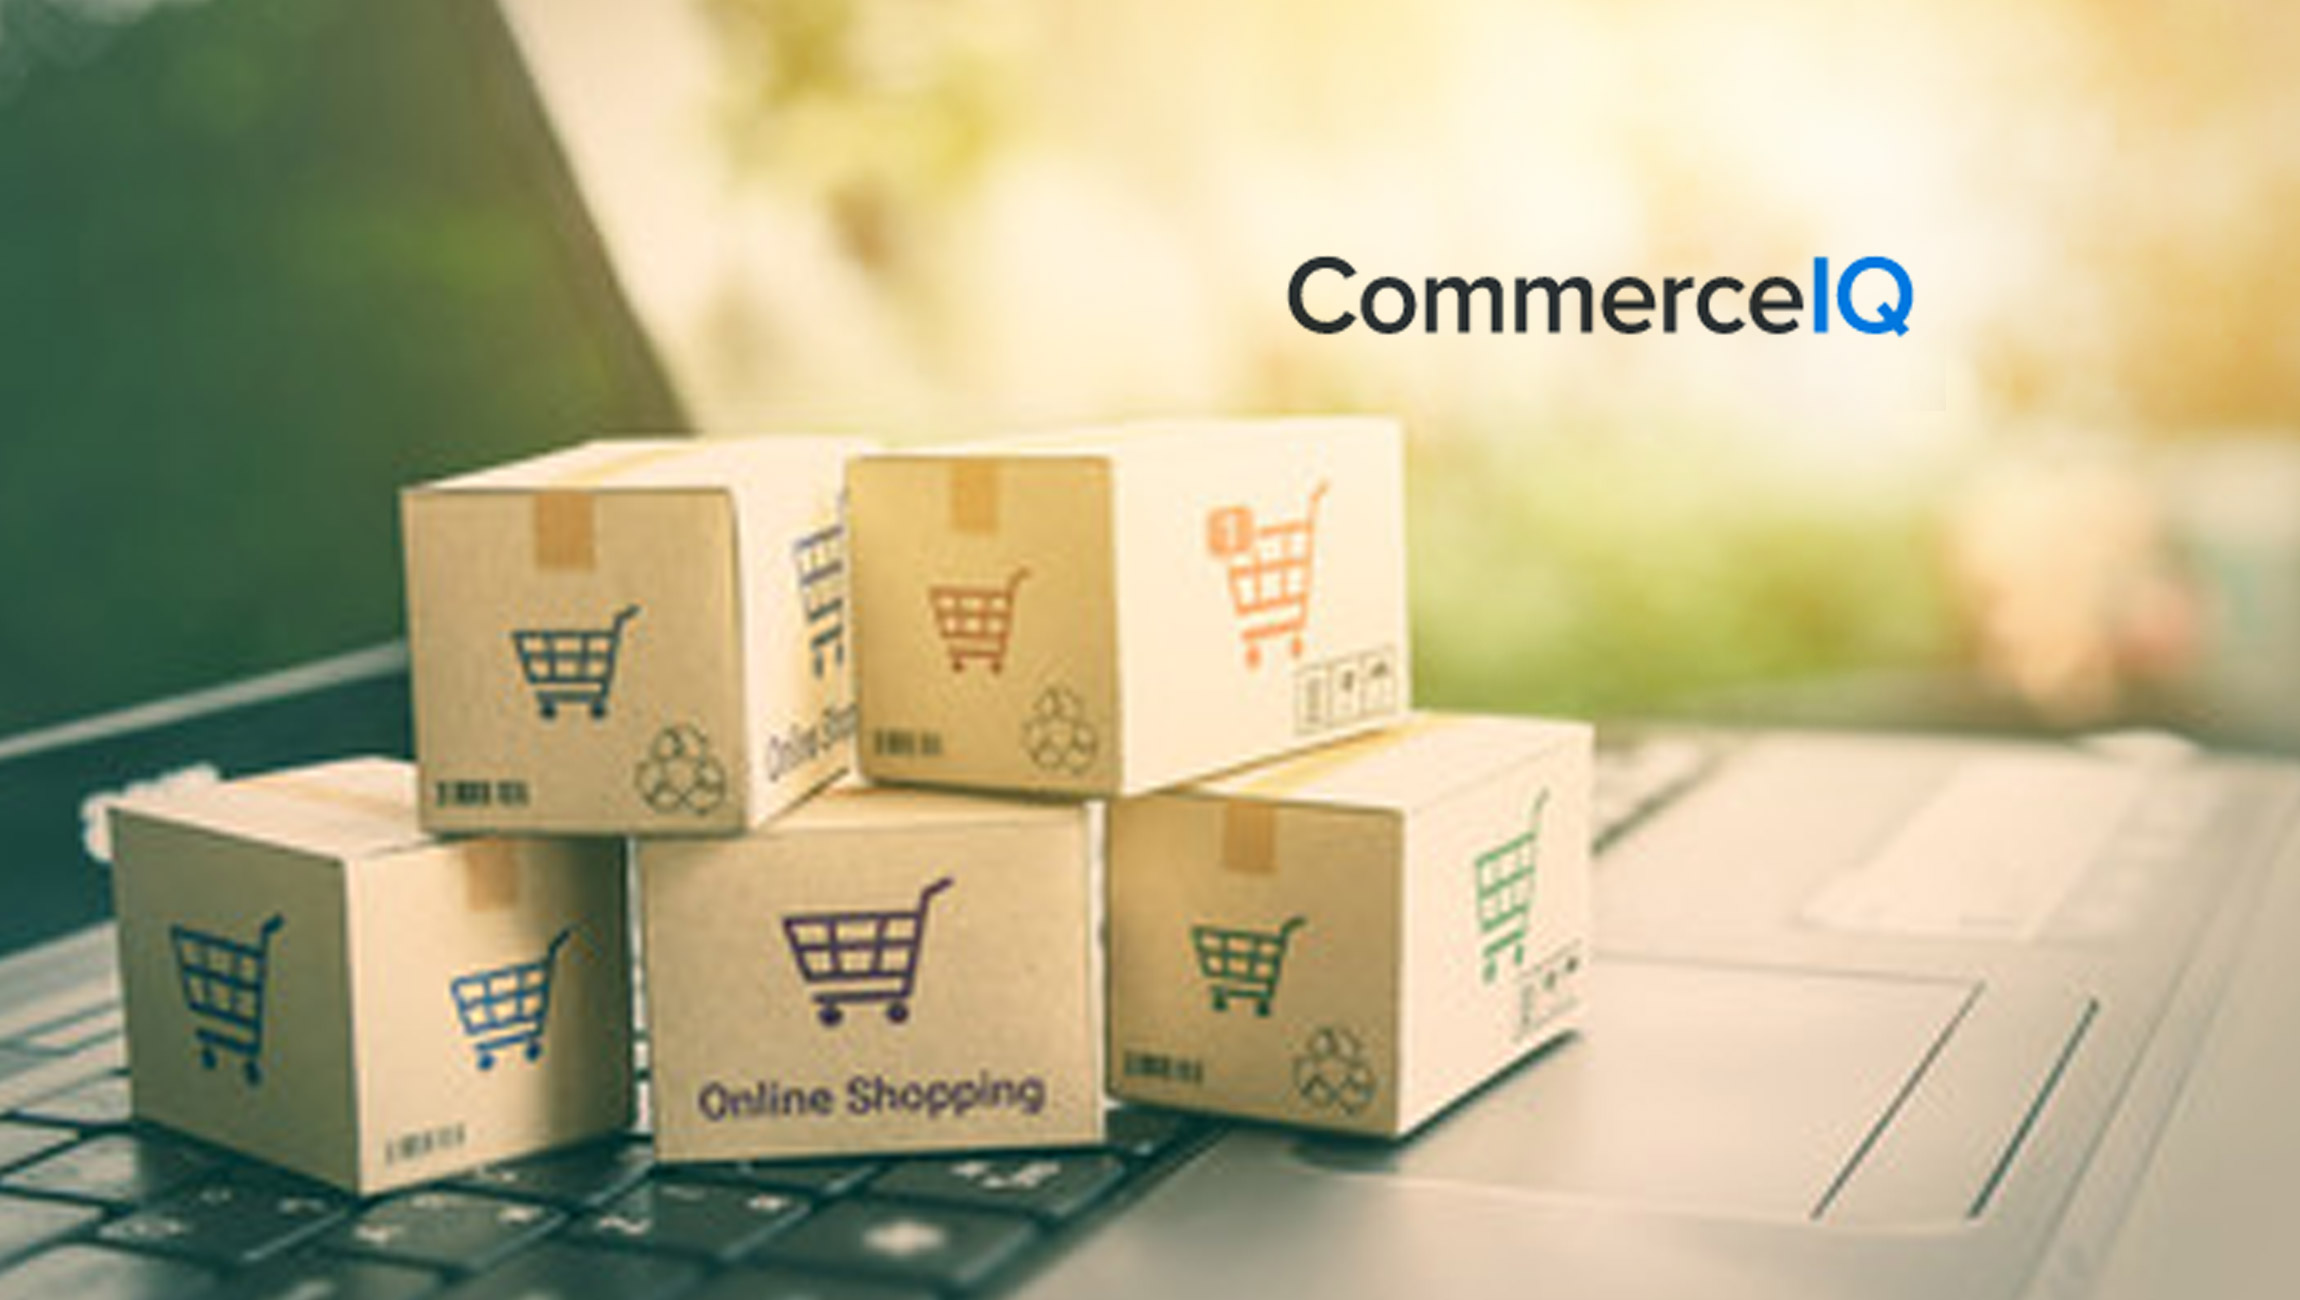 CommerceIQ Expands E-commerce Channel Optimization Beyond Amazon For Full Coverage Of All Major Online Retailers